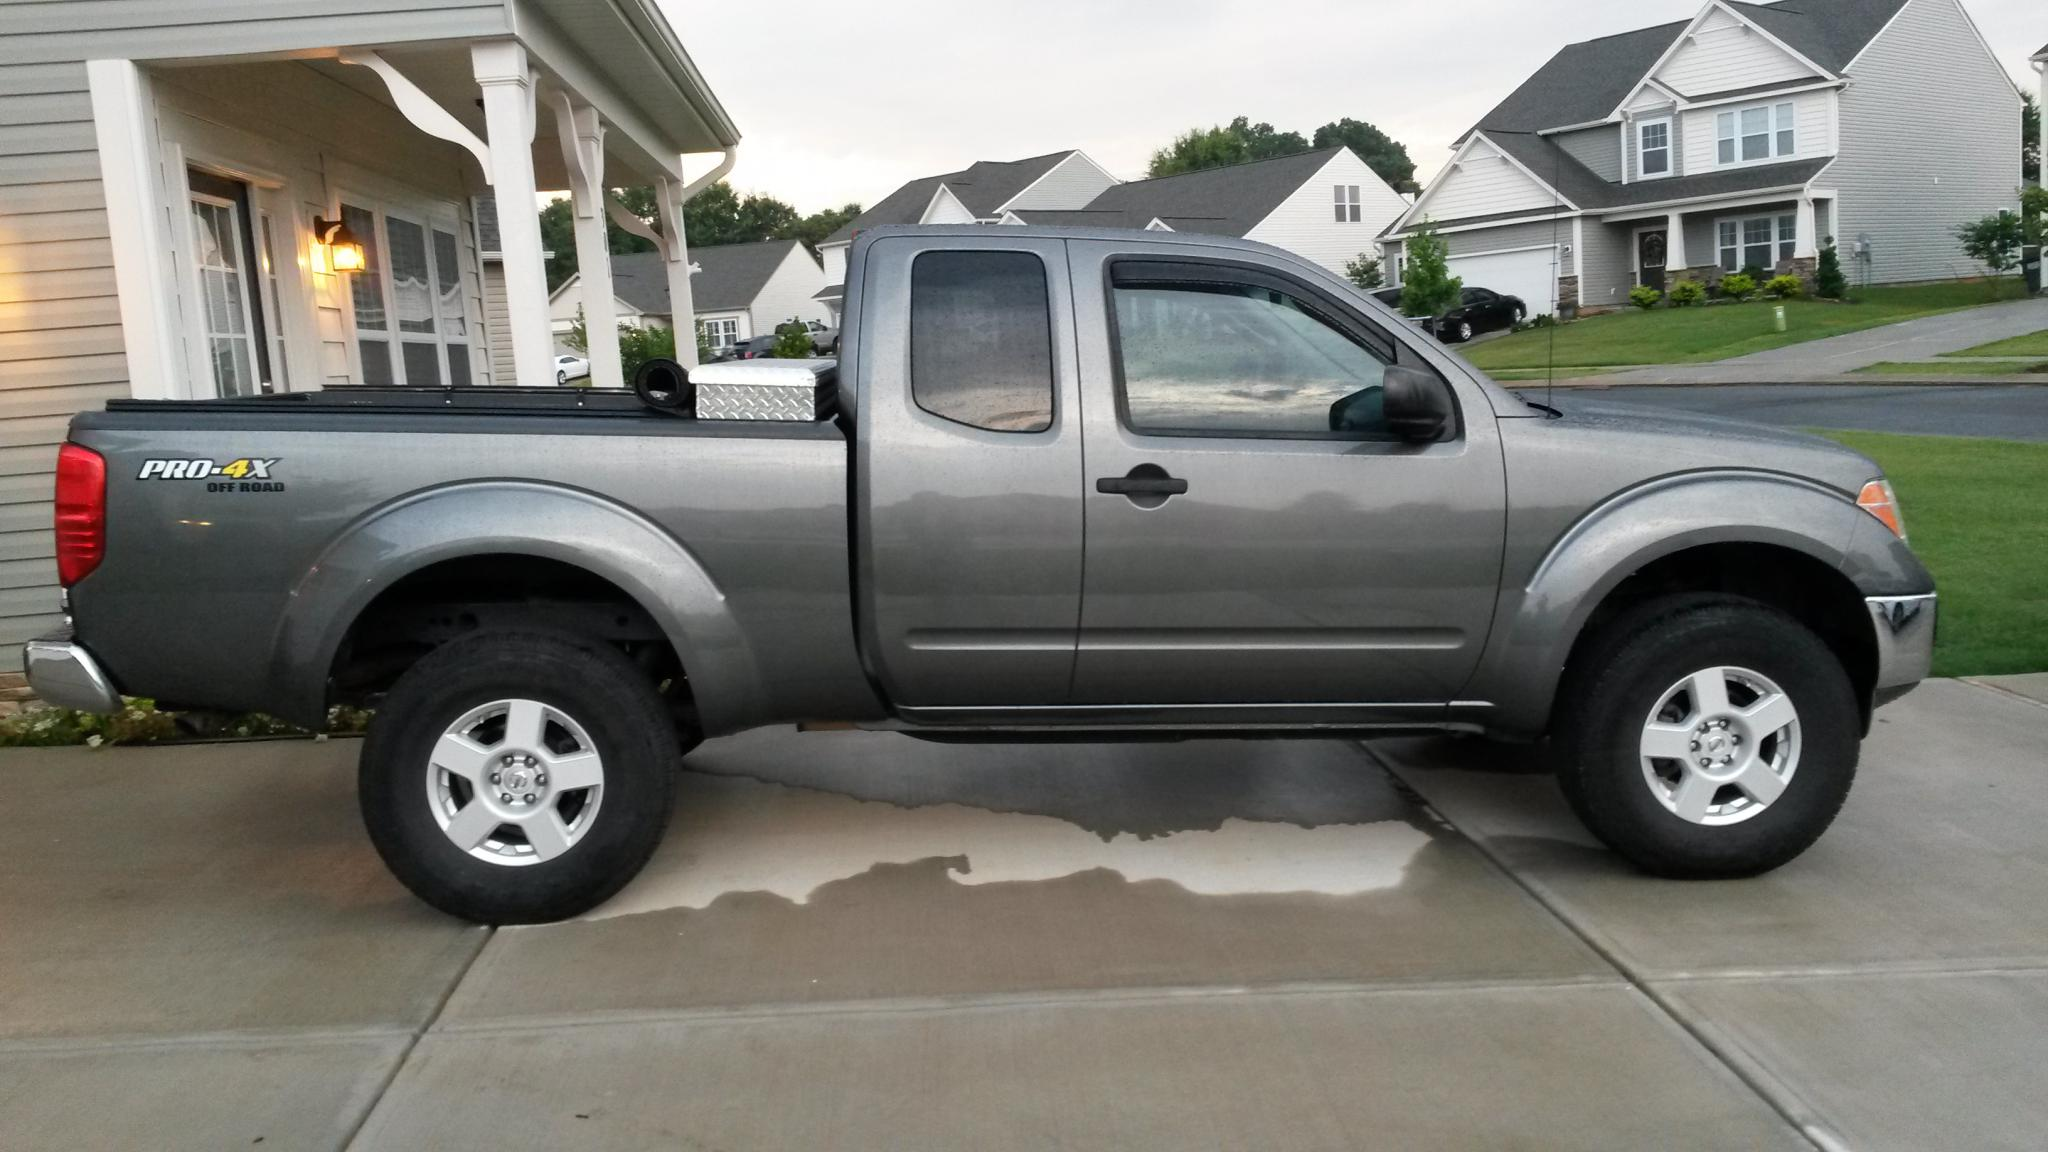 Ebay suspension lift product review - Nissan Frontier Forum